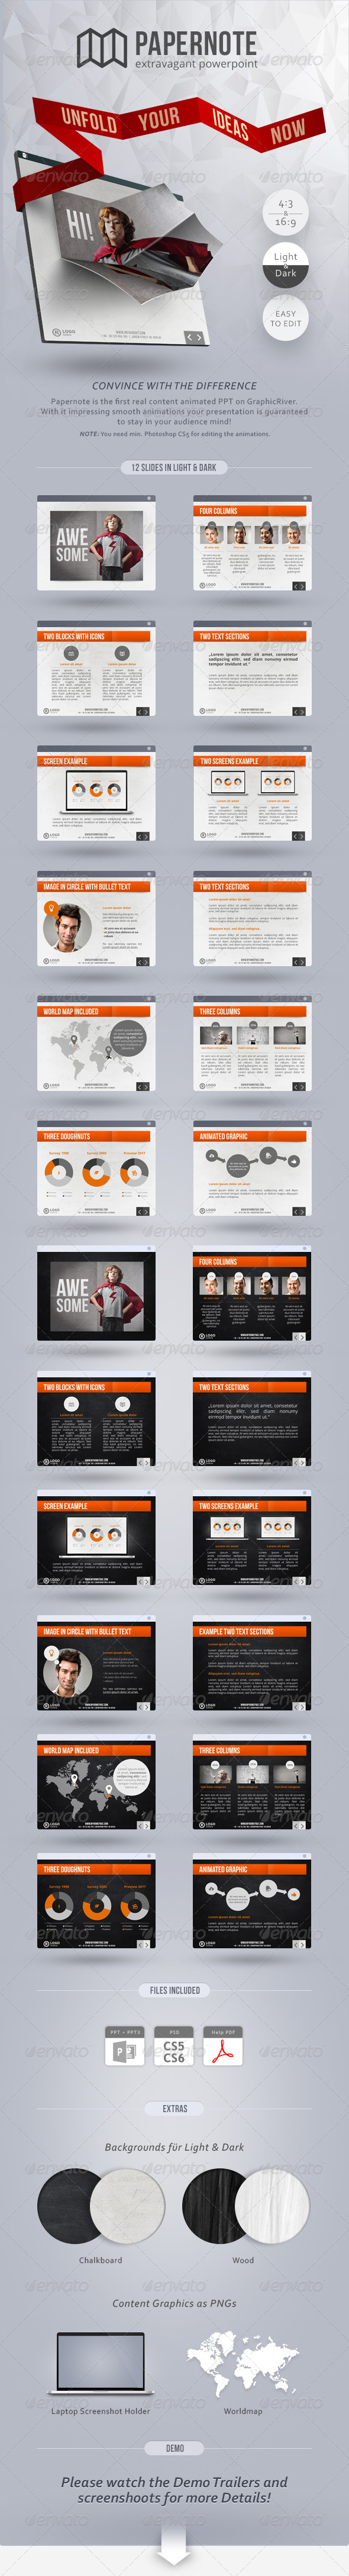 Papernote - Extravagant PowerPoint - Presentation Templates